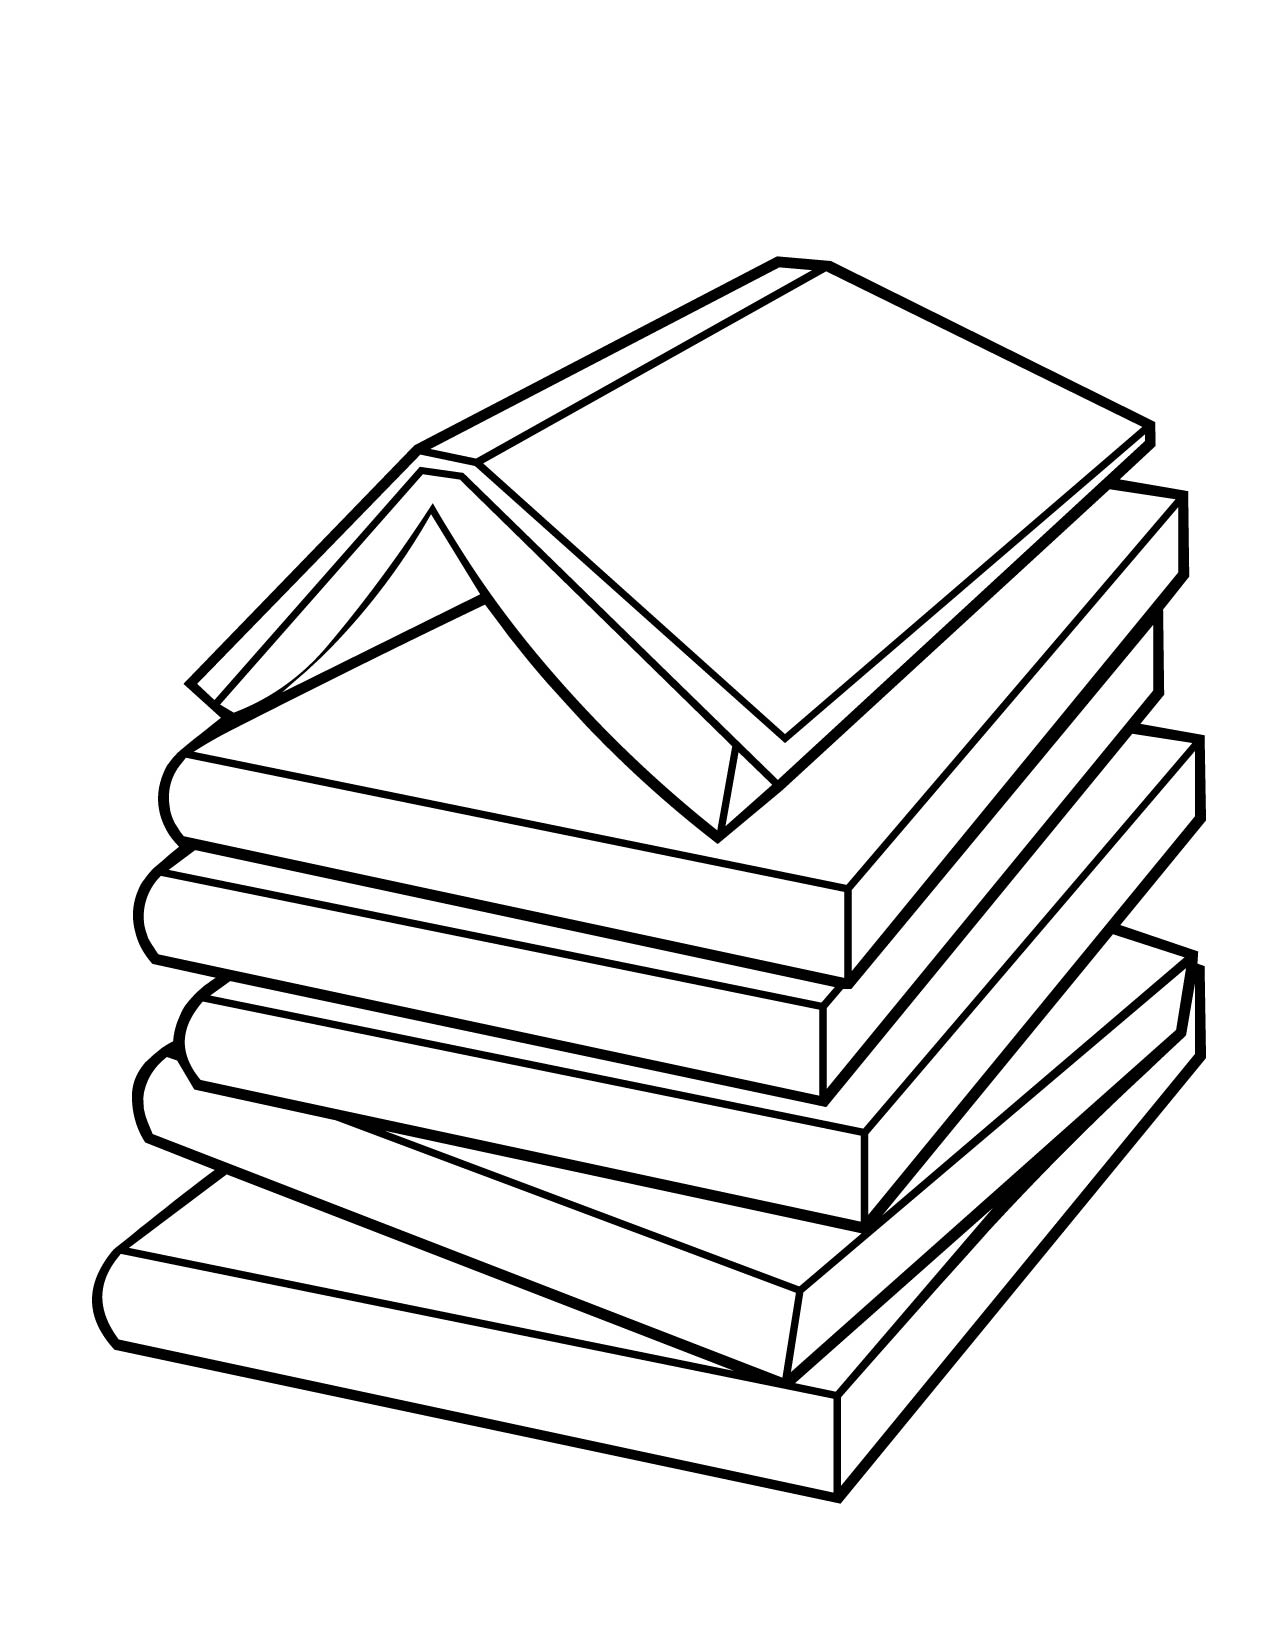 Book Coloring Pages To Download And Print For Free Books For Coloring